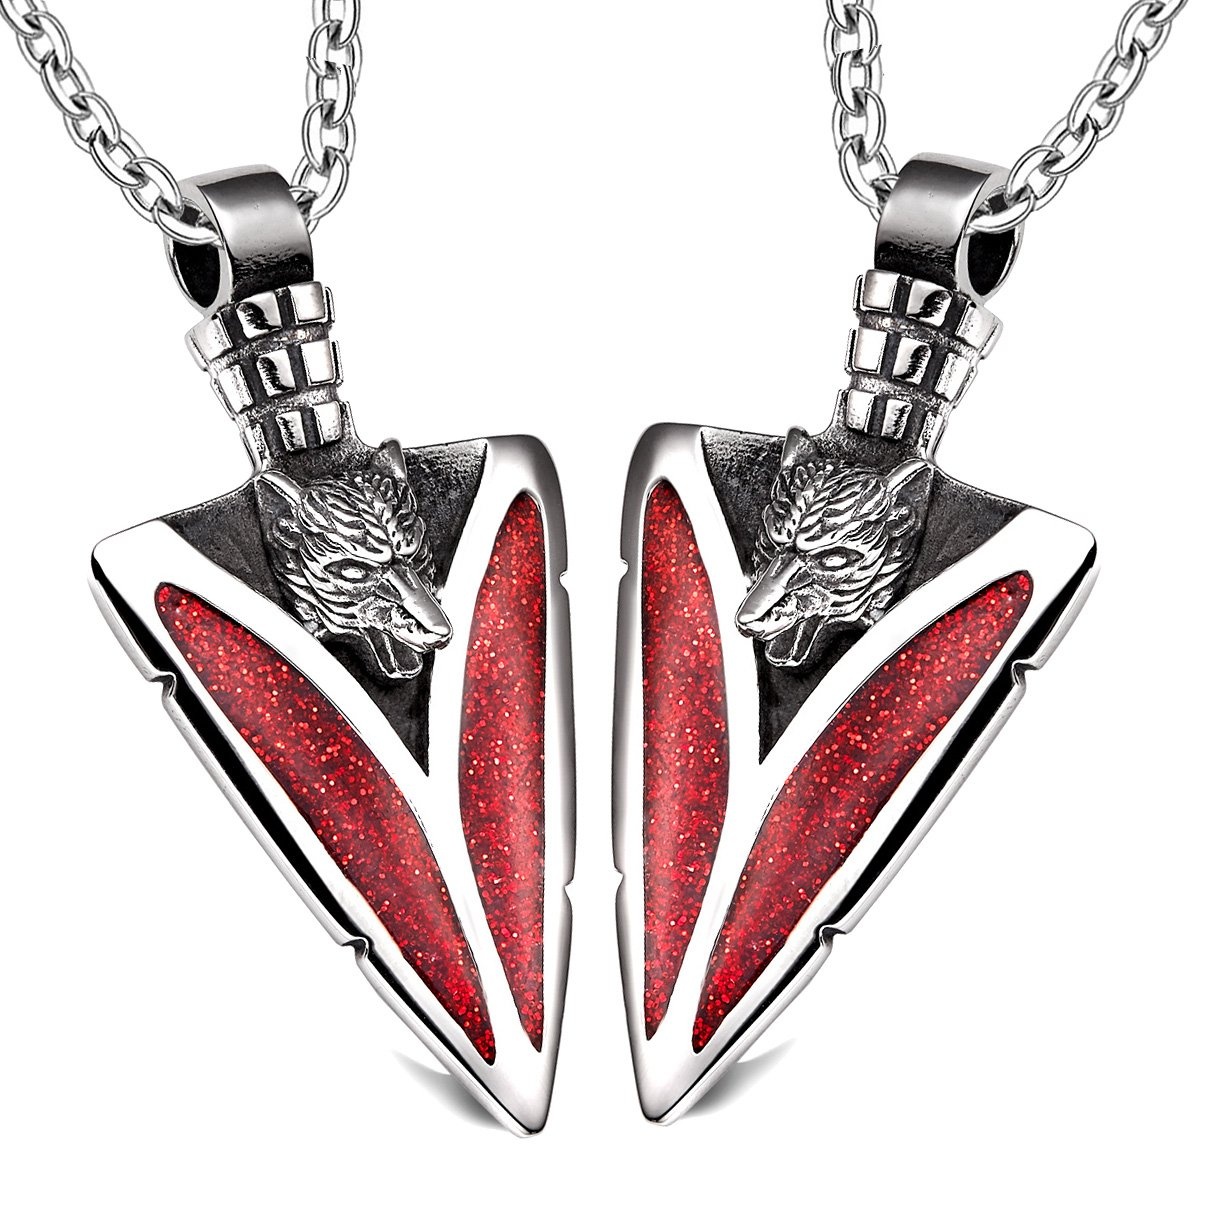 Arrowhead Howling Wolf Love Couples or Best Friends Protection Amulets Set Sparkling Royal Red Necklaces